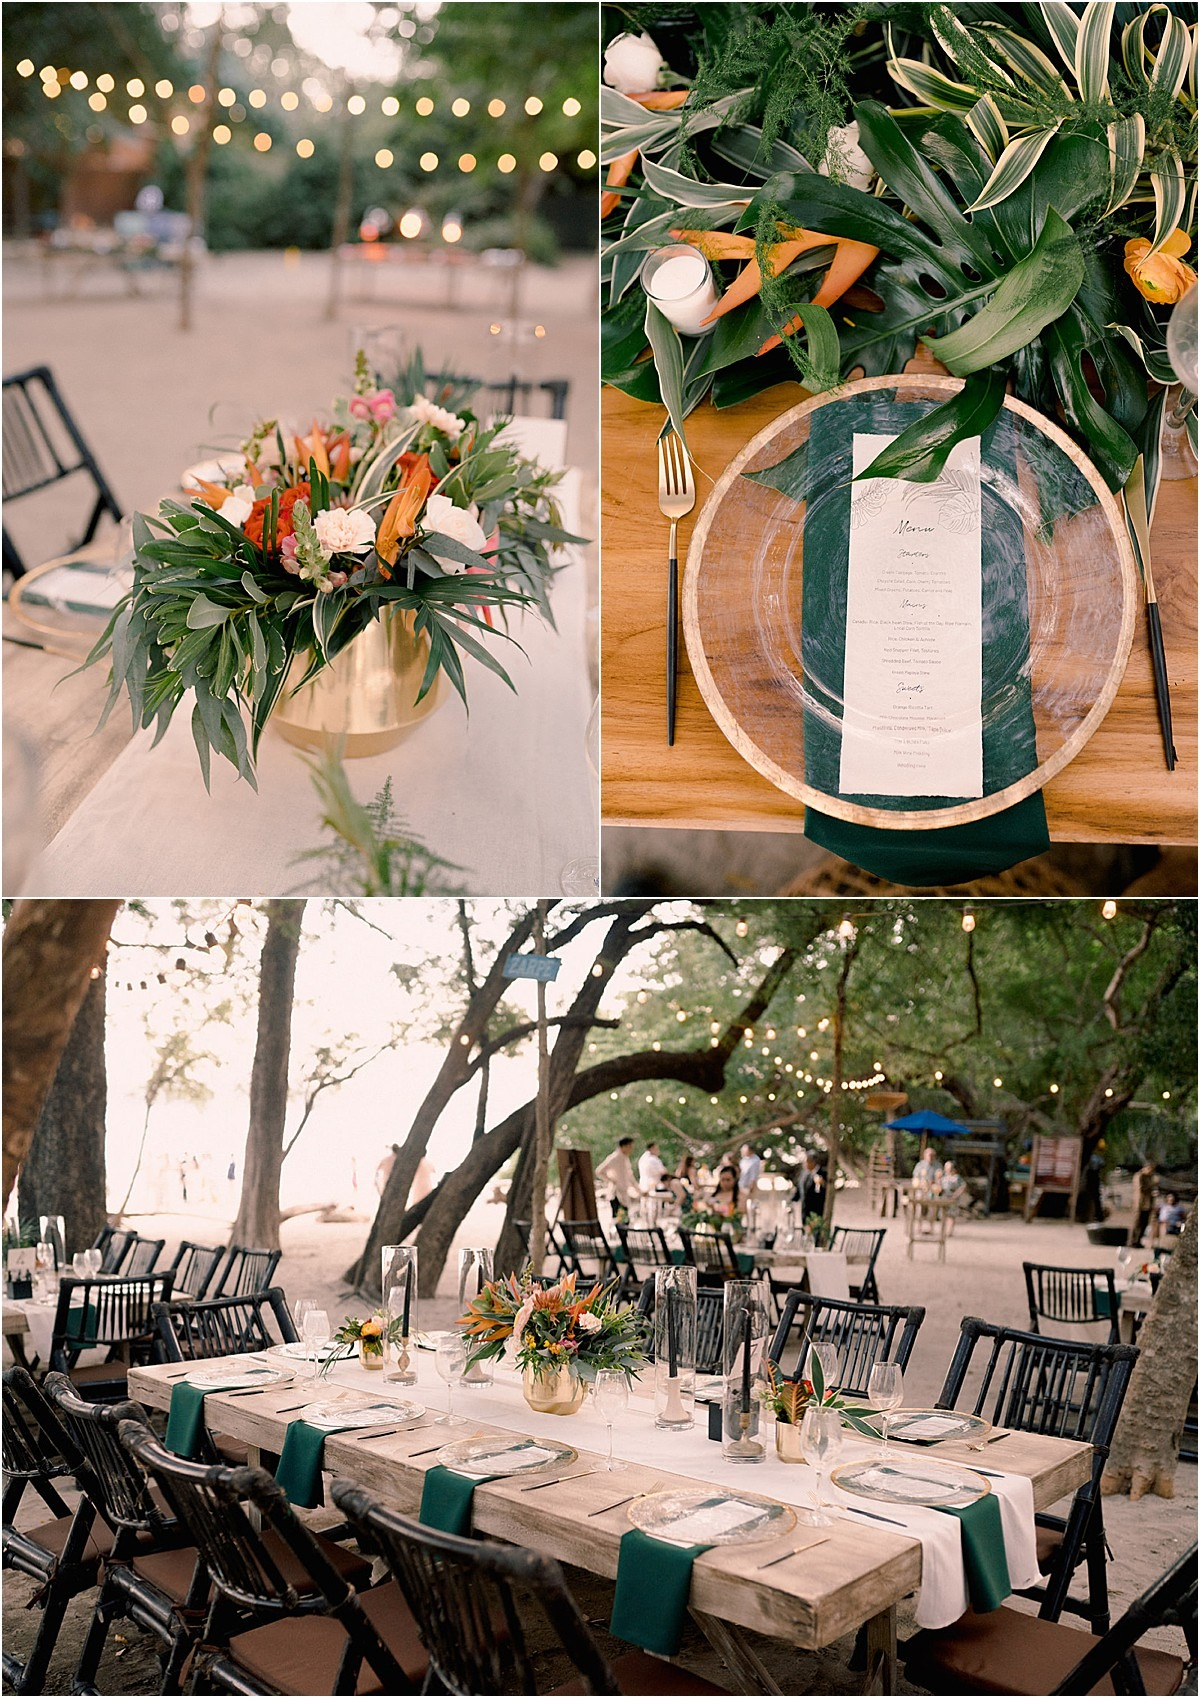 able-decor-menu-plates-love